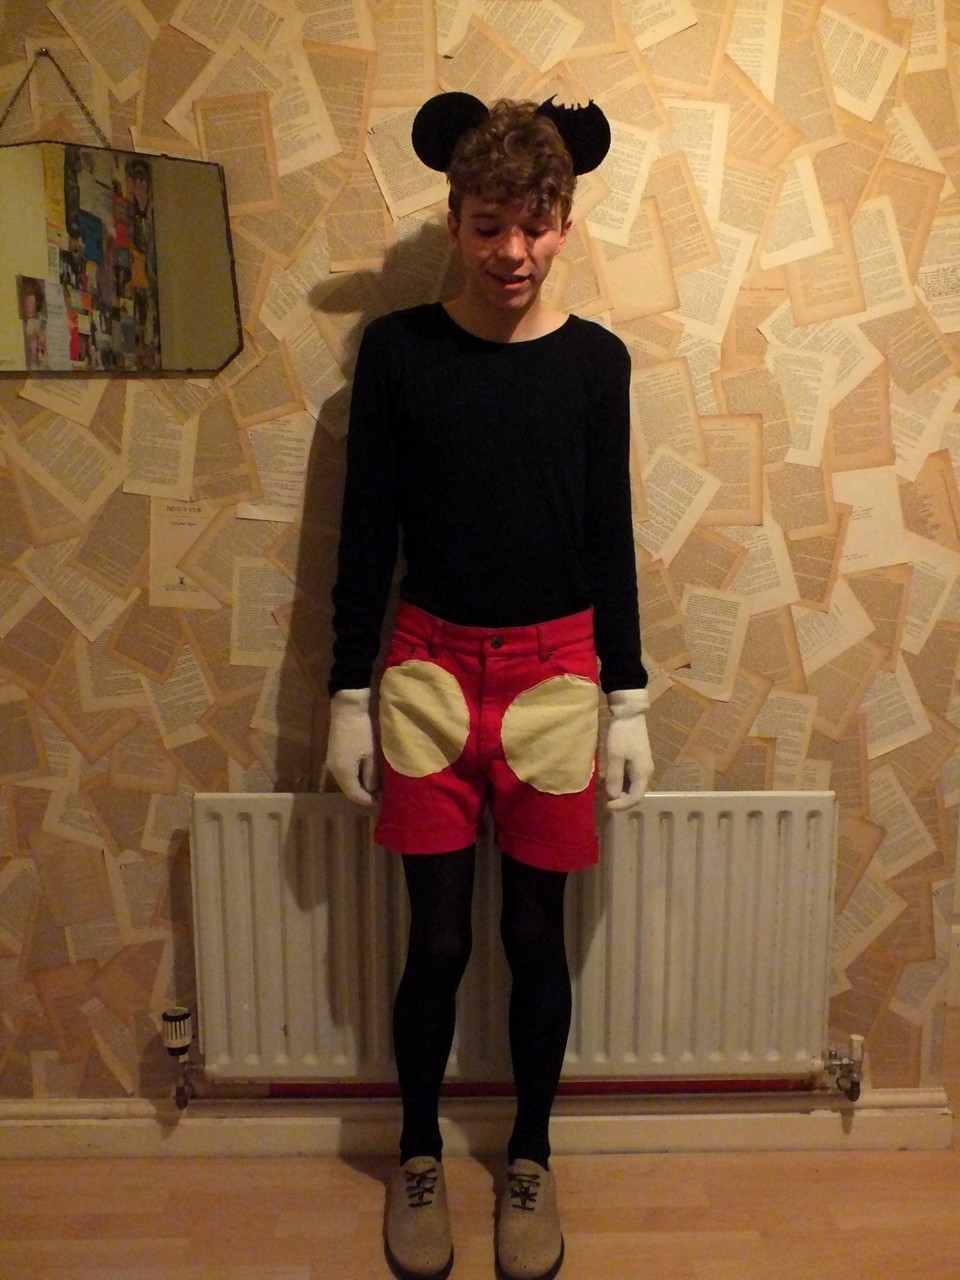 This is me in my Mickey Mouse costume I made.  sc 1 st  curlywurlyboy & Luke Heywood u2014 This is me in my Mickey Mouse costume I made. ...